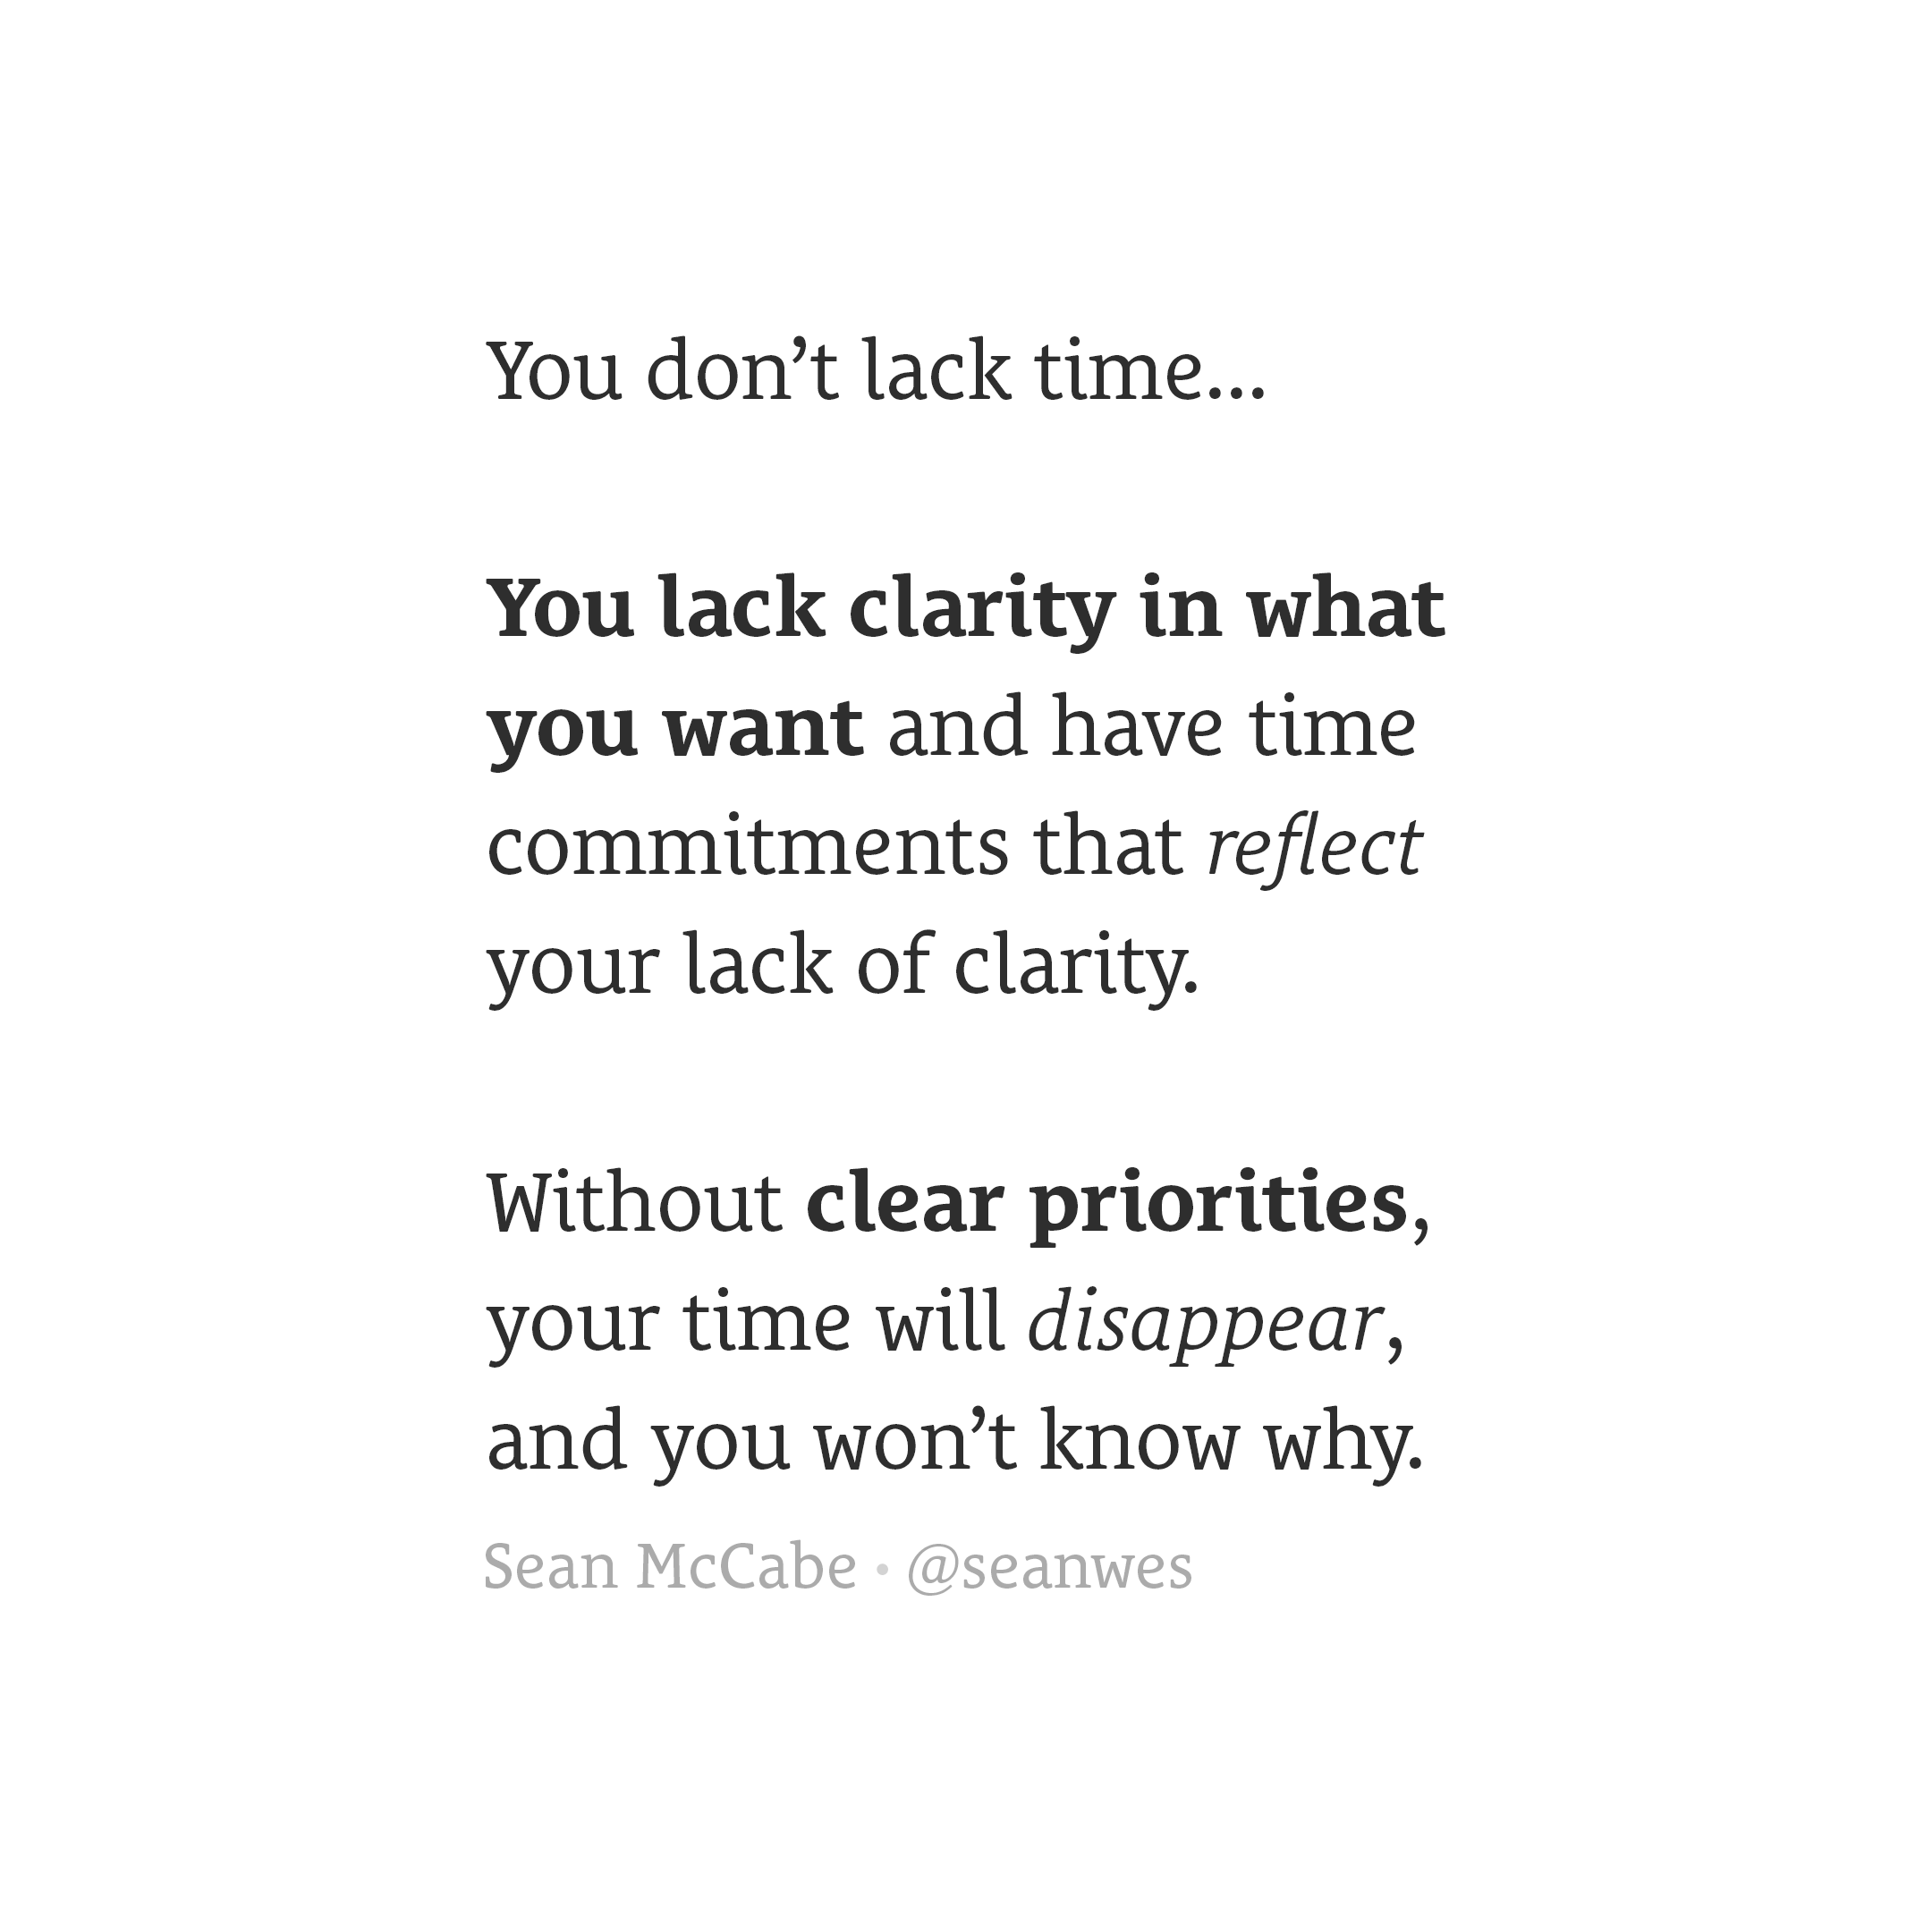 You don't lack time, you lack clarity in what you want and have time commitments that reflect your lack of clarity.